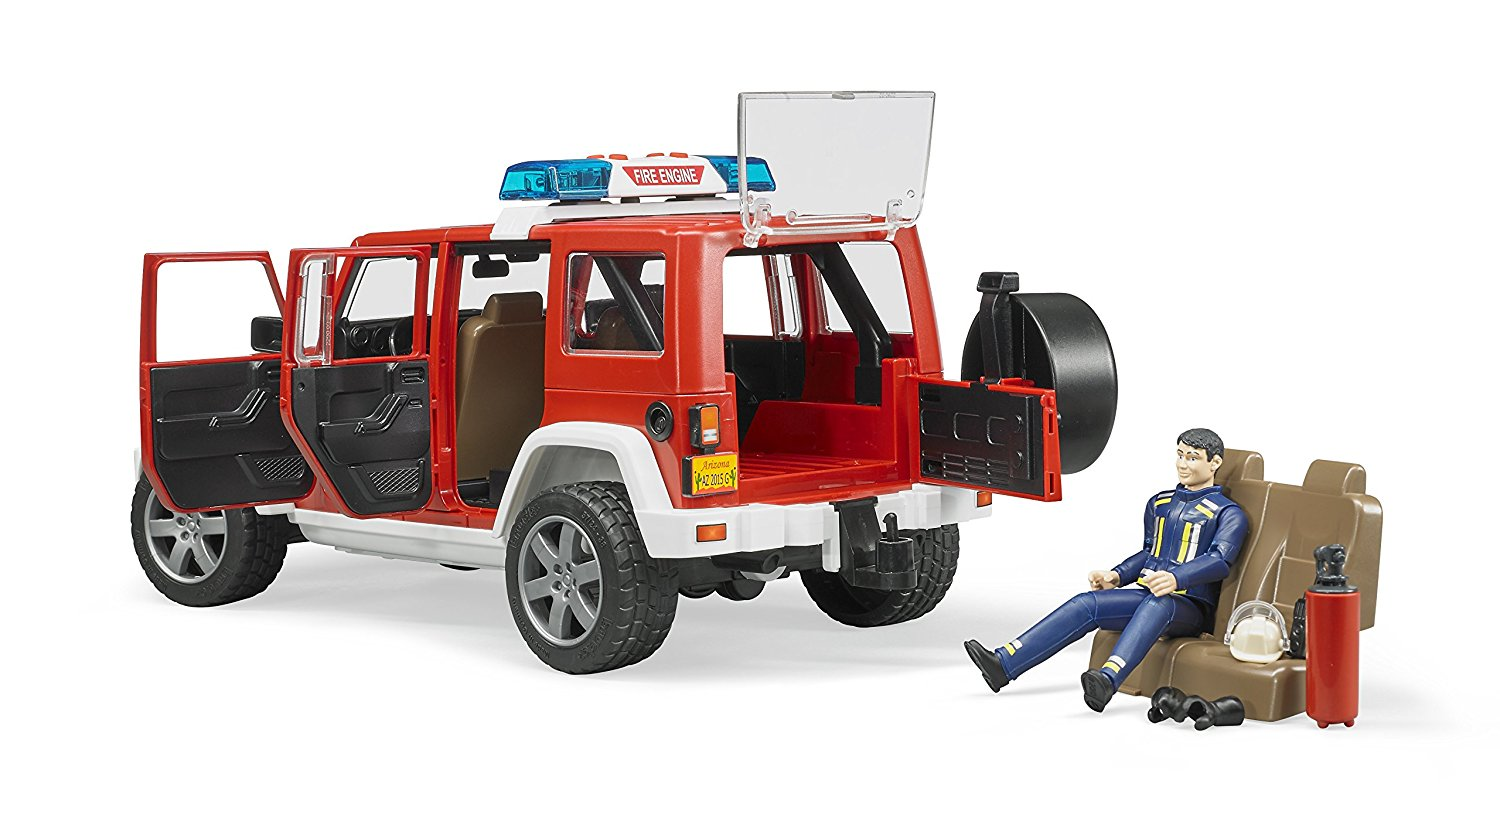 Kavanaghs Toys Bruder Jeep Wrangler Rubicon Fire Vehicle